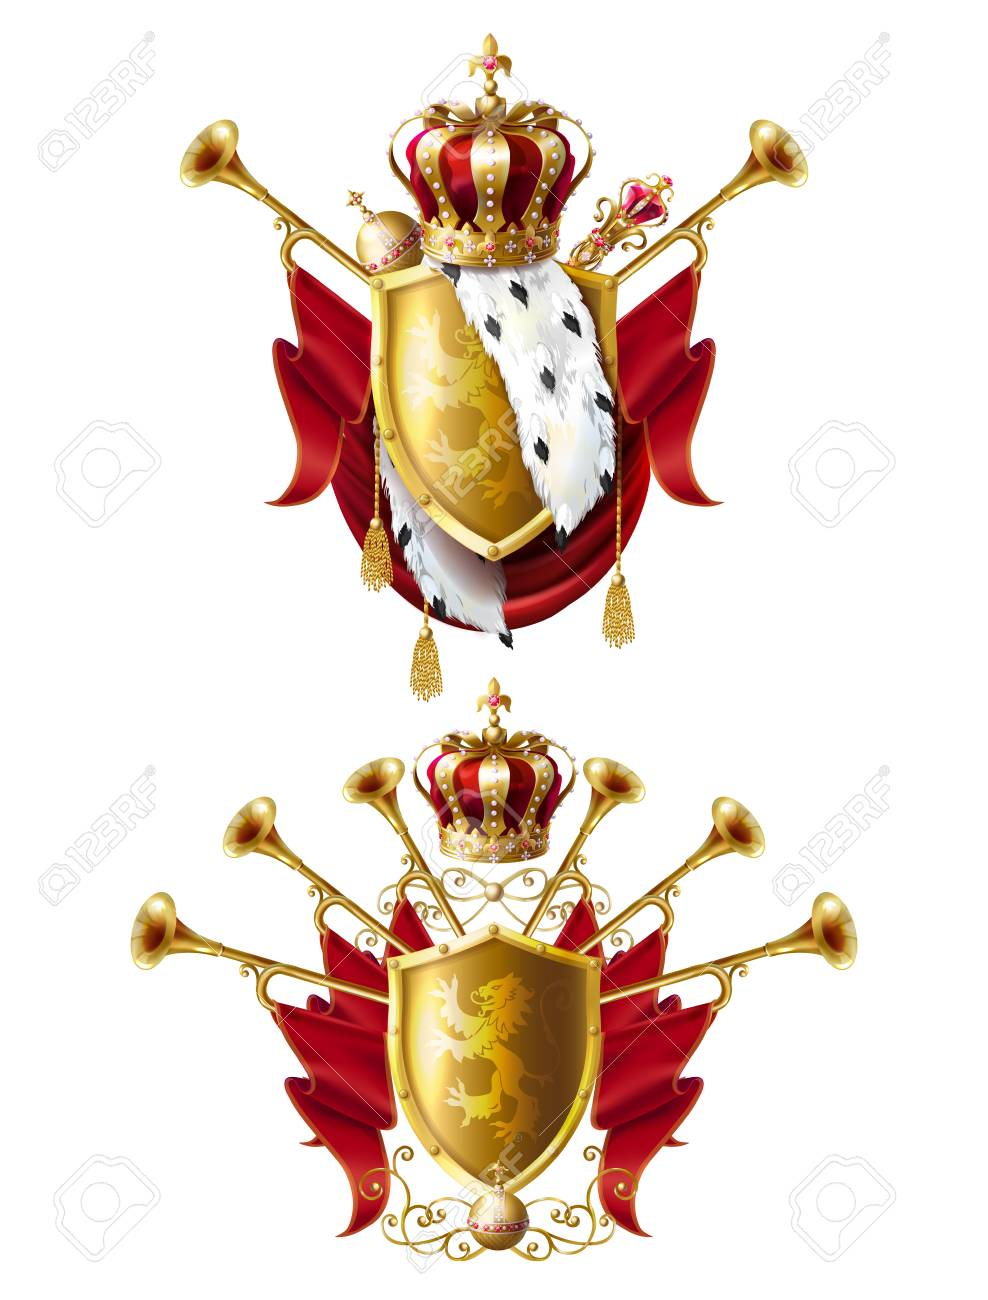 Royal golden crowns with jewels, fanfares, scepter, orb and coat of arms with red velvet and ermine fur, set realistic icons isolated on white background. Heraldic elements, monarchic symbols - 107950398